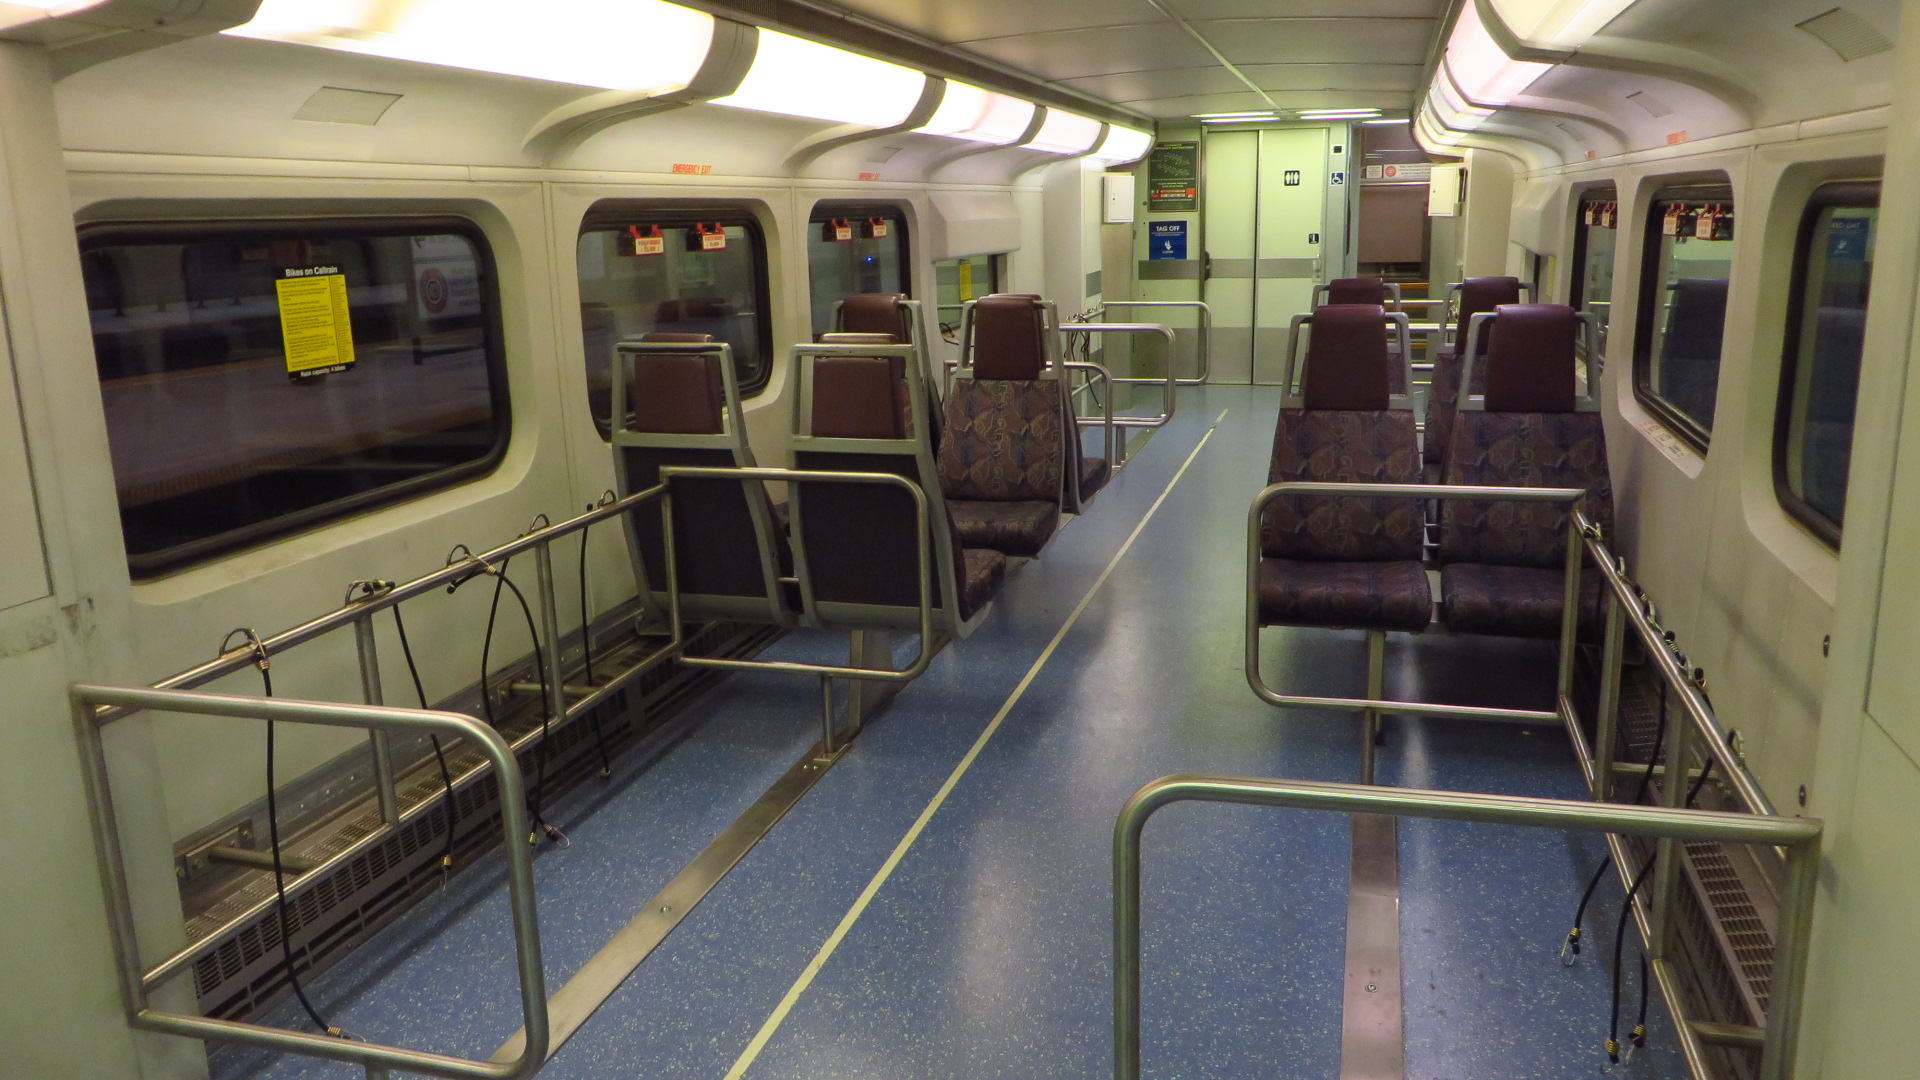 A view of the lower floor of an ex-Metrolink Bombardier Bilevel car with two bike storage locations